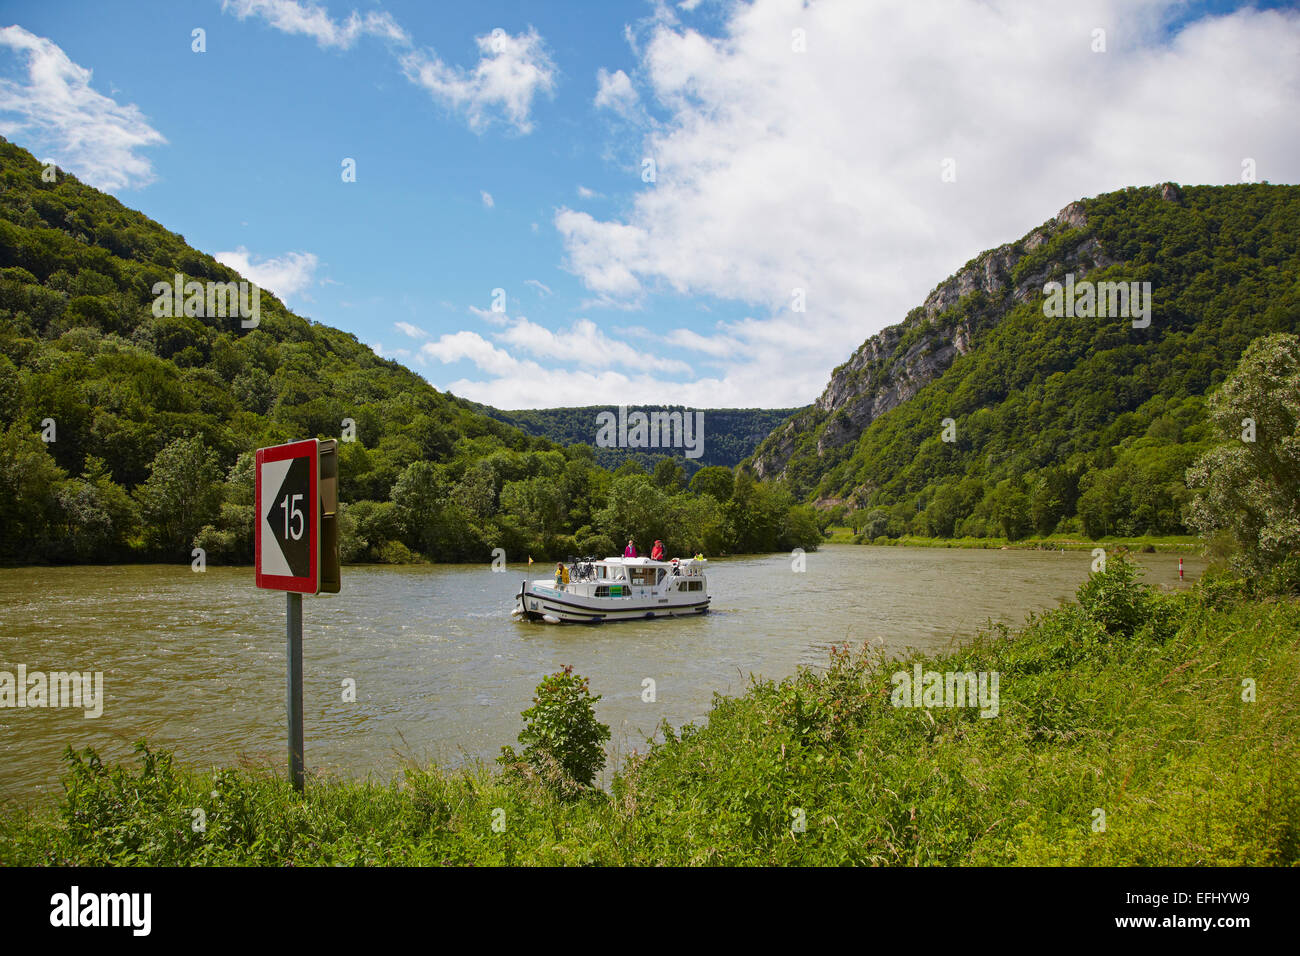 Houseboat in the Doubs-Rhine-Rhone-channel near Douvot, PK 98, Doubs, Region Franche-Comte, France, Europe Stock Photo